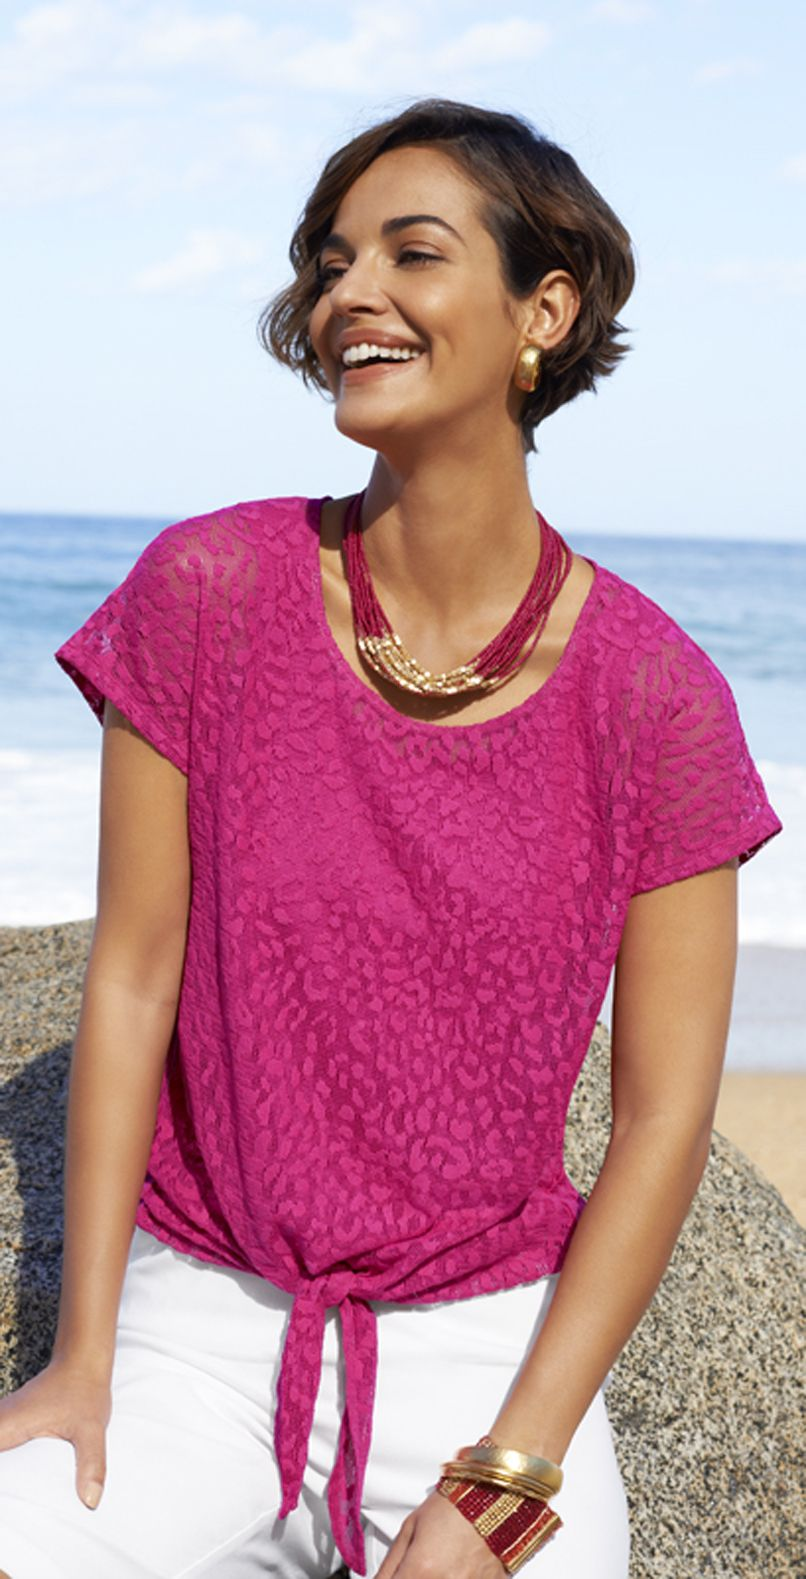 df4bfcd65745 Chico's Lana Leopard Lace Tee. Leopard-spotted lace and a tie-front hem  transform the short-sleeve tee.